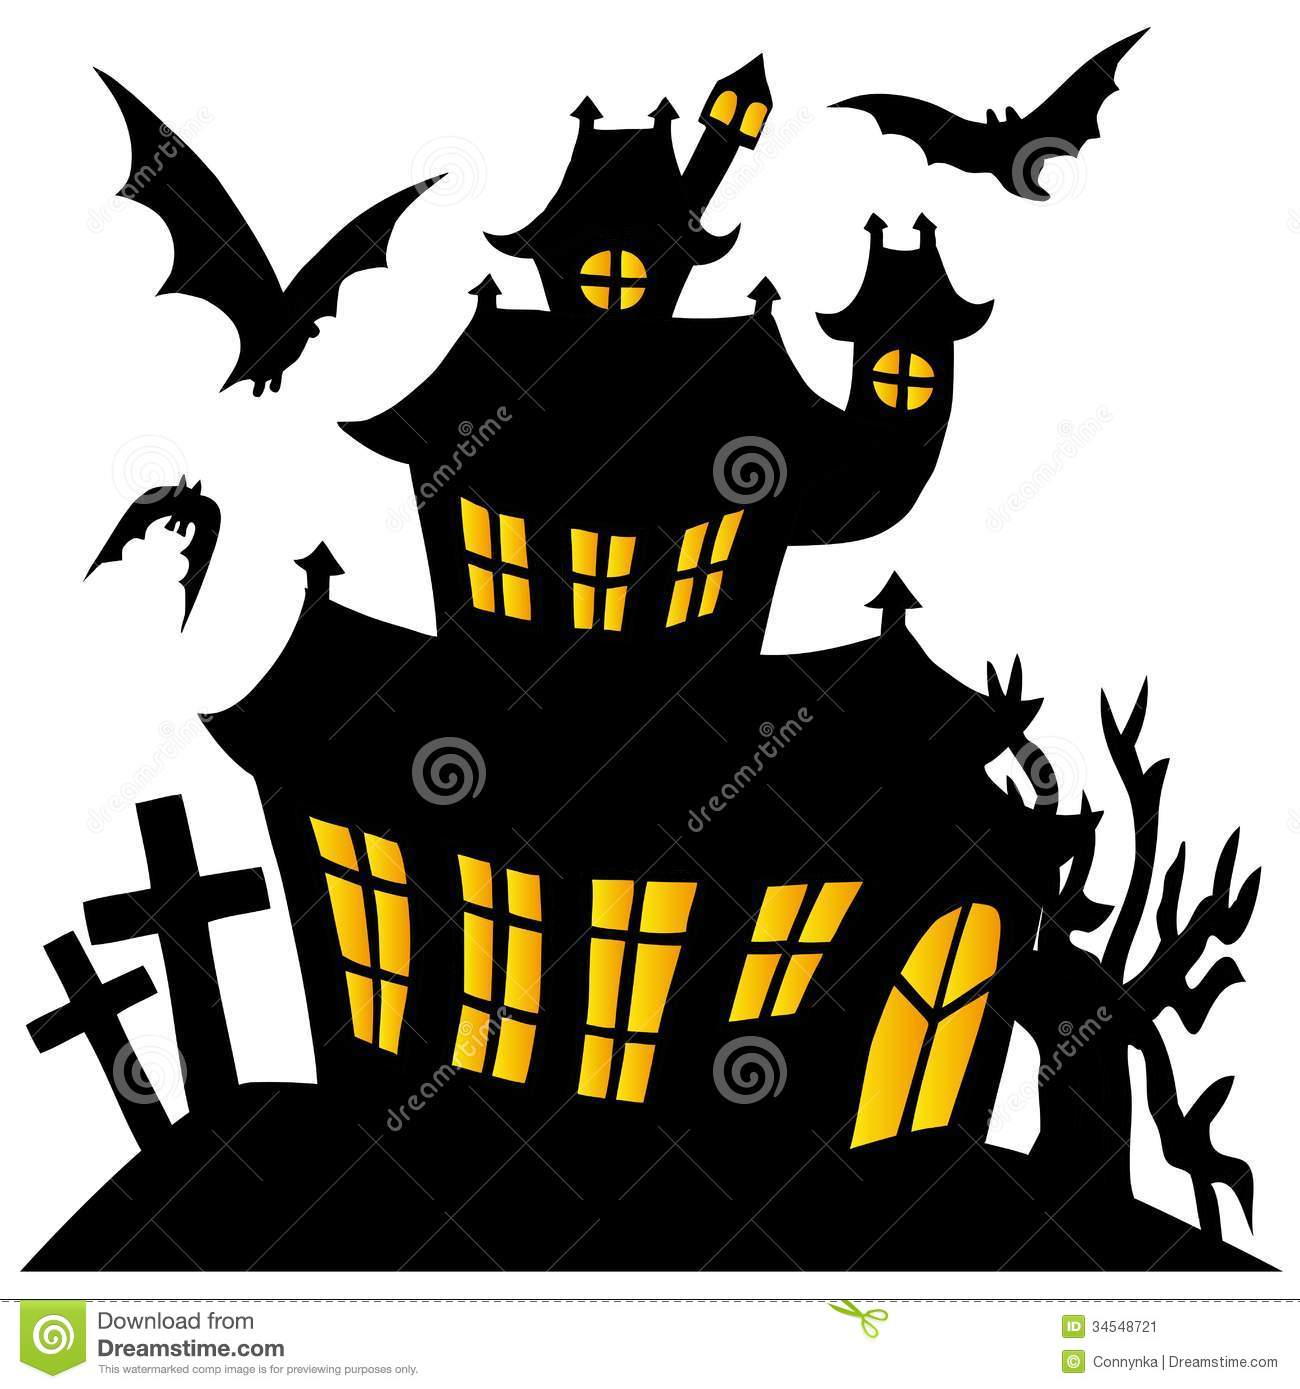 Silhouette Spooky House 01 Stock Image - Image: 34548721